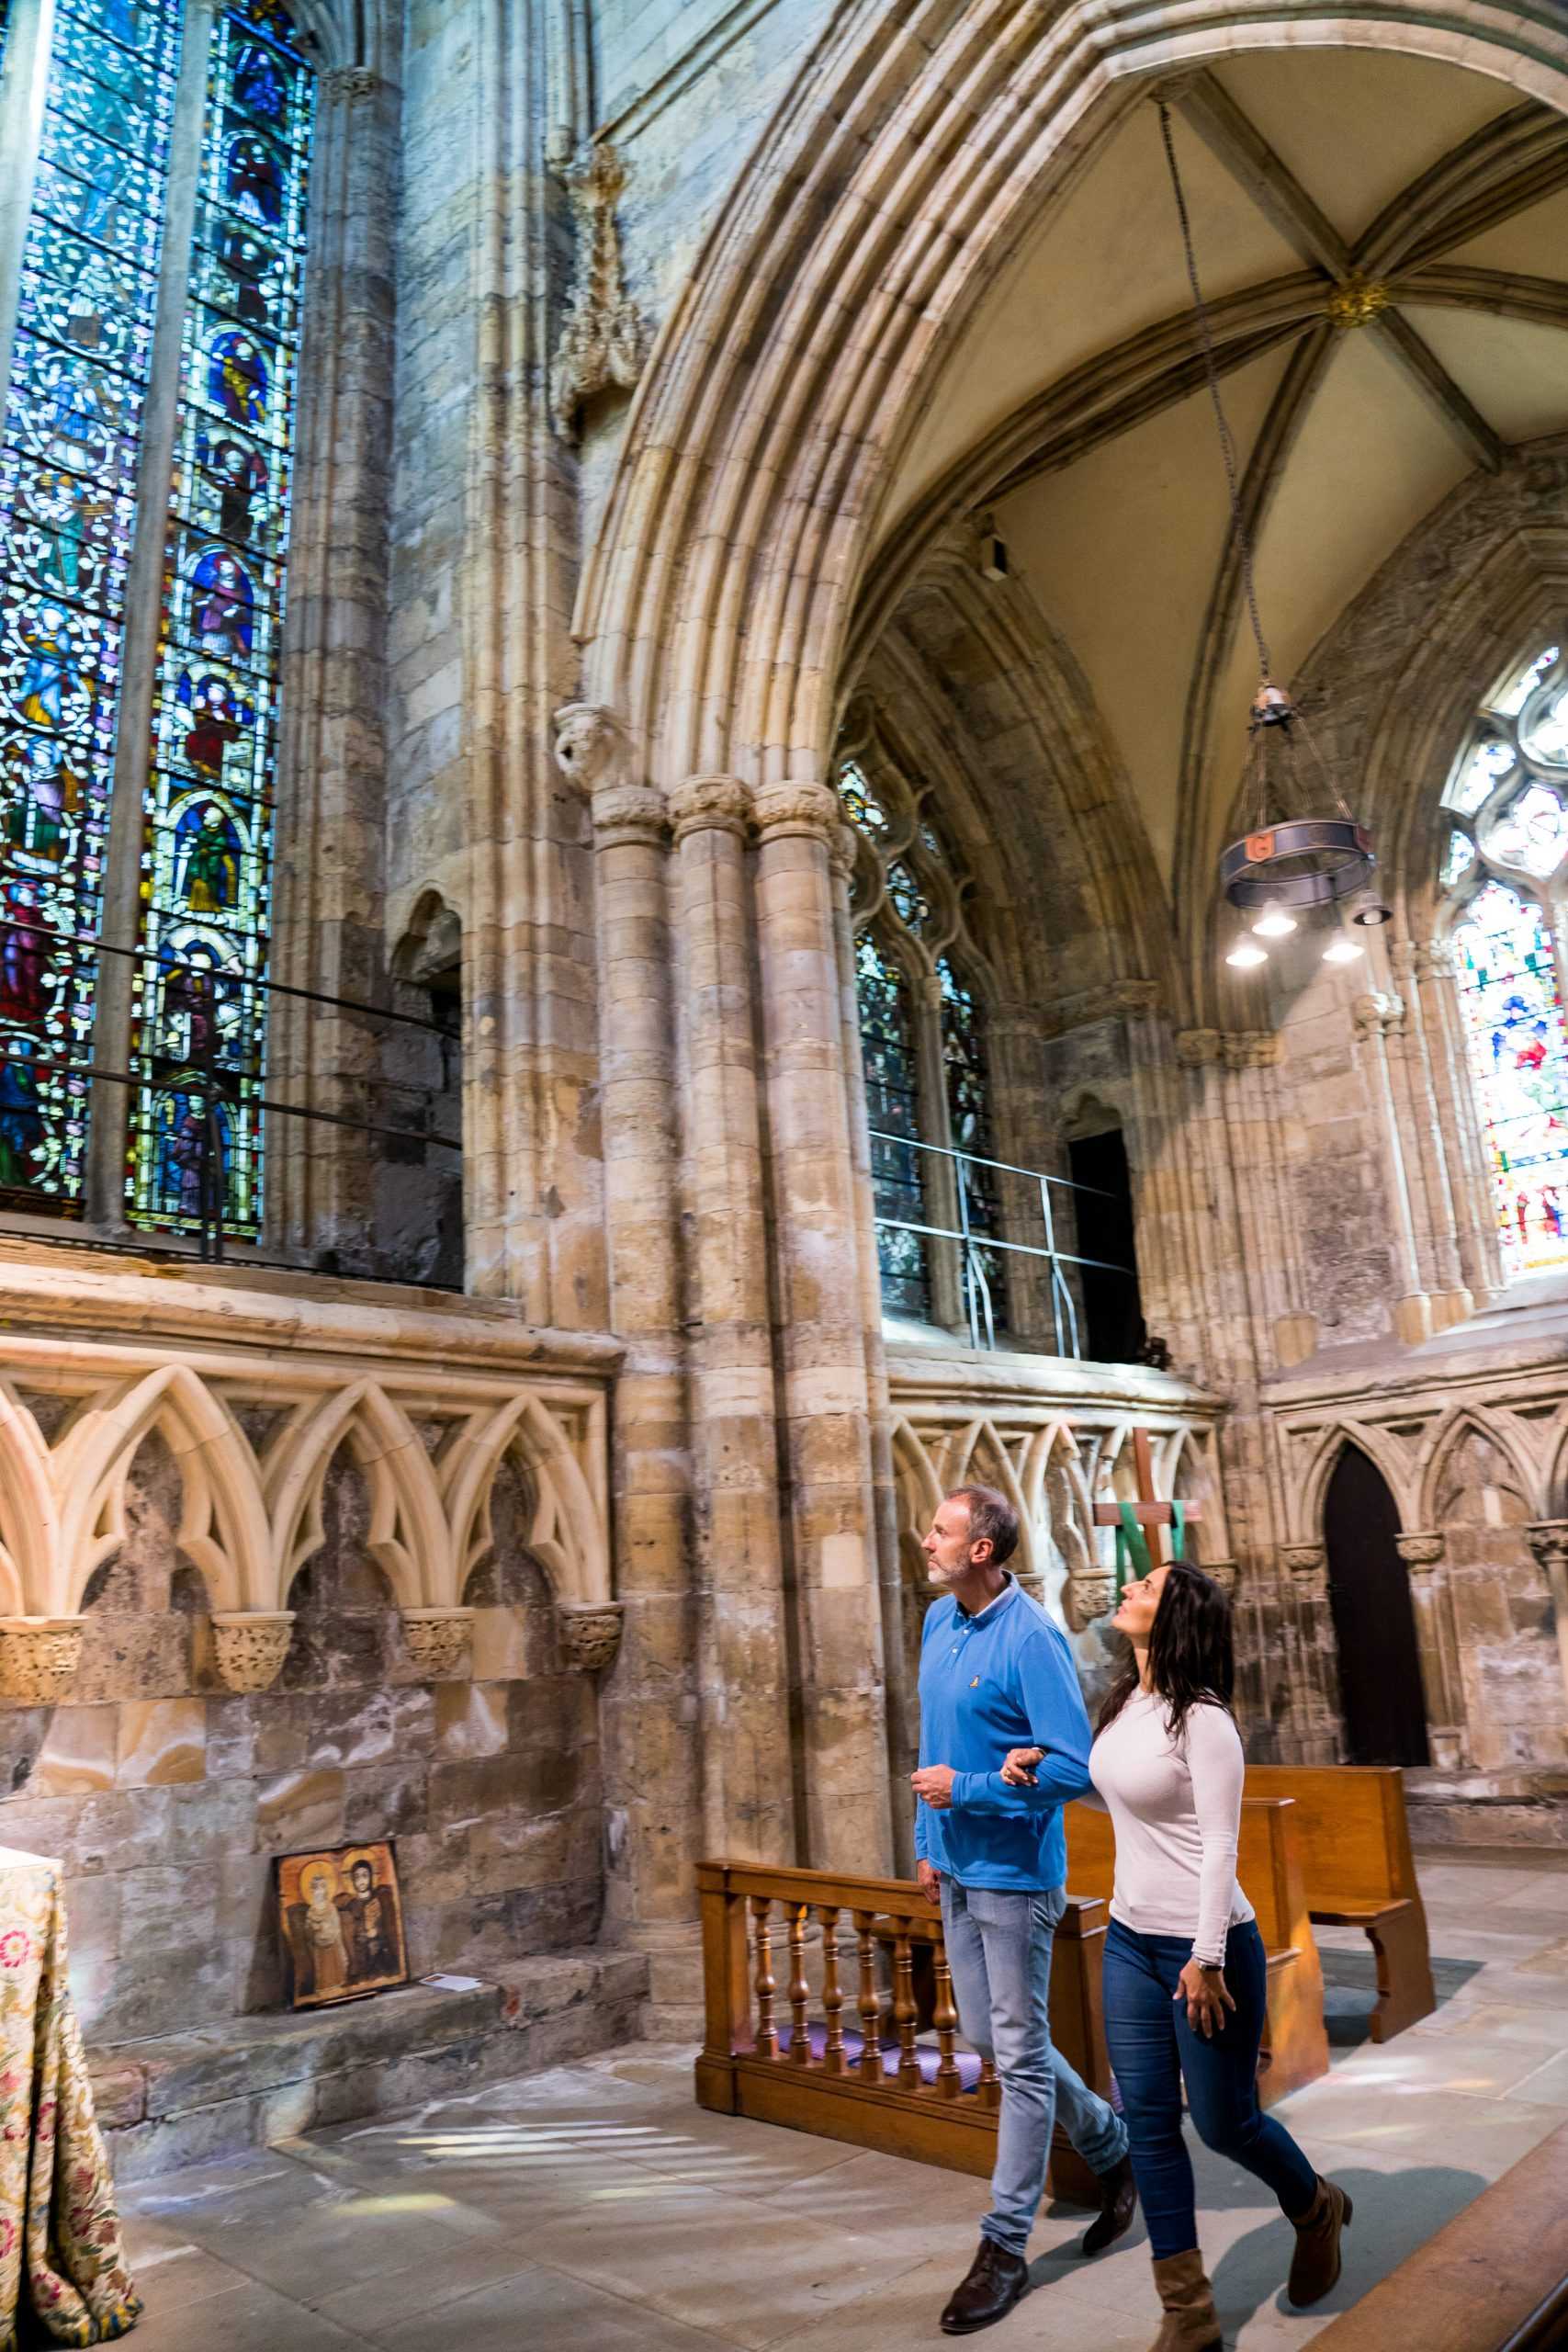 Stained glass windows at Selby Abbey